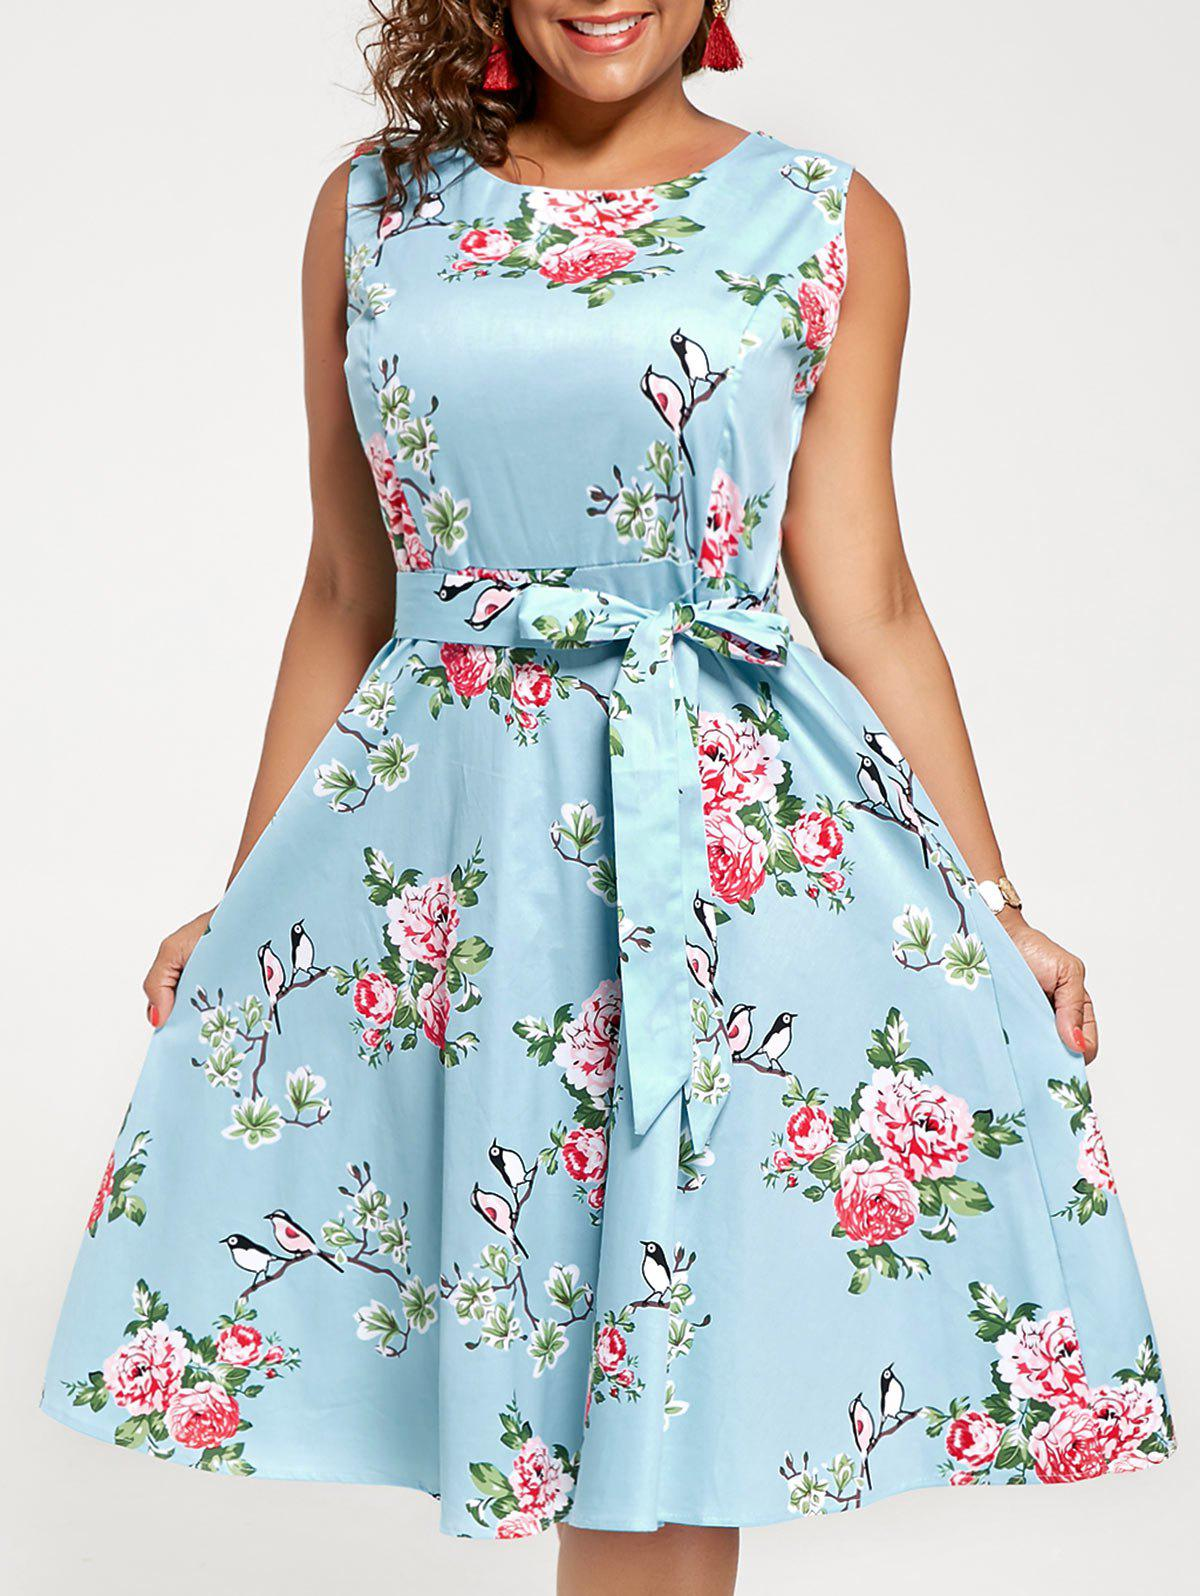 Plus Size Sleeveless A Line Floral Midi DressWOMEN<br><br>Size: 3XL; Color: CLOUDY; Style: Cute; Material: Polyester; Silhouette: A-Line; Dresses Length: Mid-Calf; Neckline: Round Collar; Sleeve Length: Sleeveless; Pattern Type: Floral; With Belt: Yes; Season: Summer; Weight: 0.4000kg; Package Contents: 1 x Dress  1 x Belt;